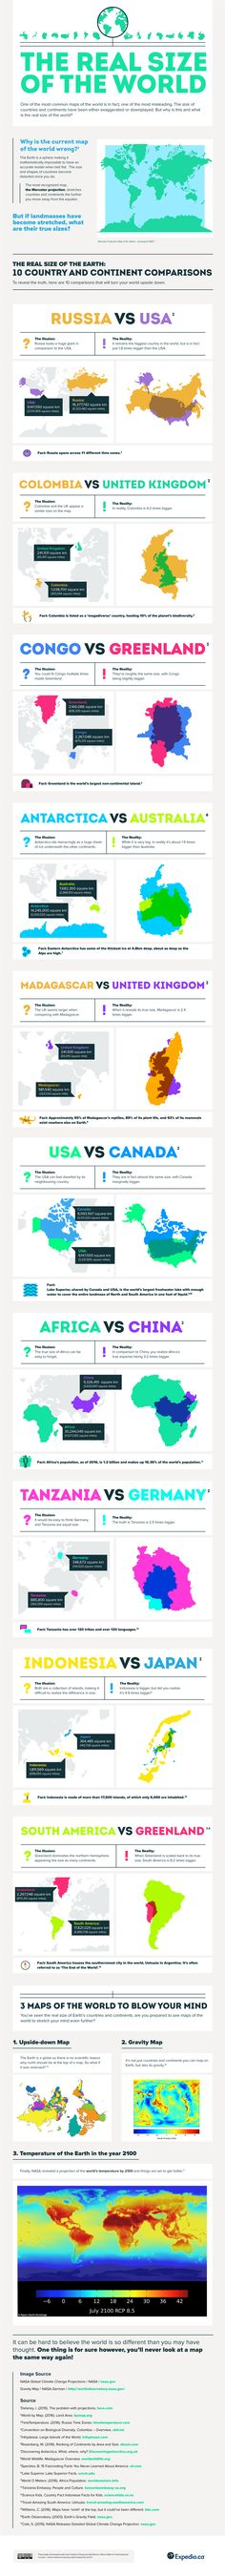 The Real Size Of The World #Infographic #Travel